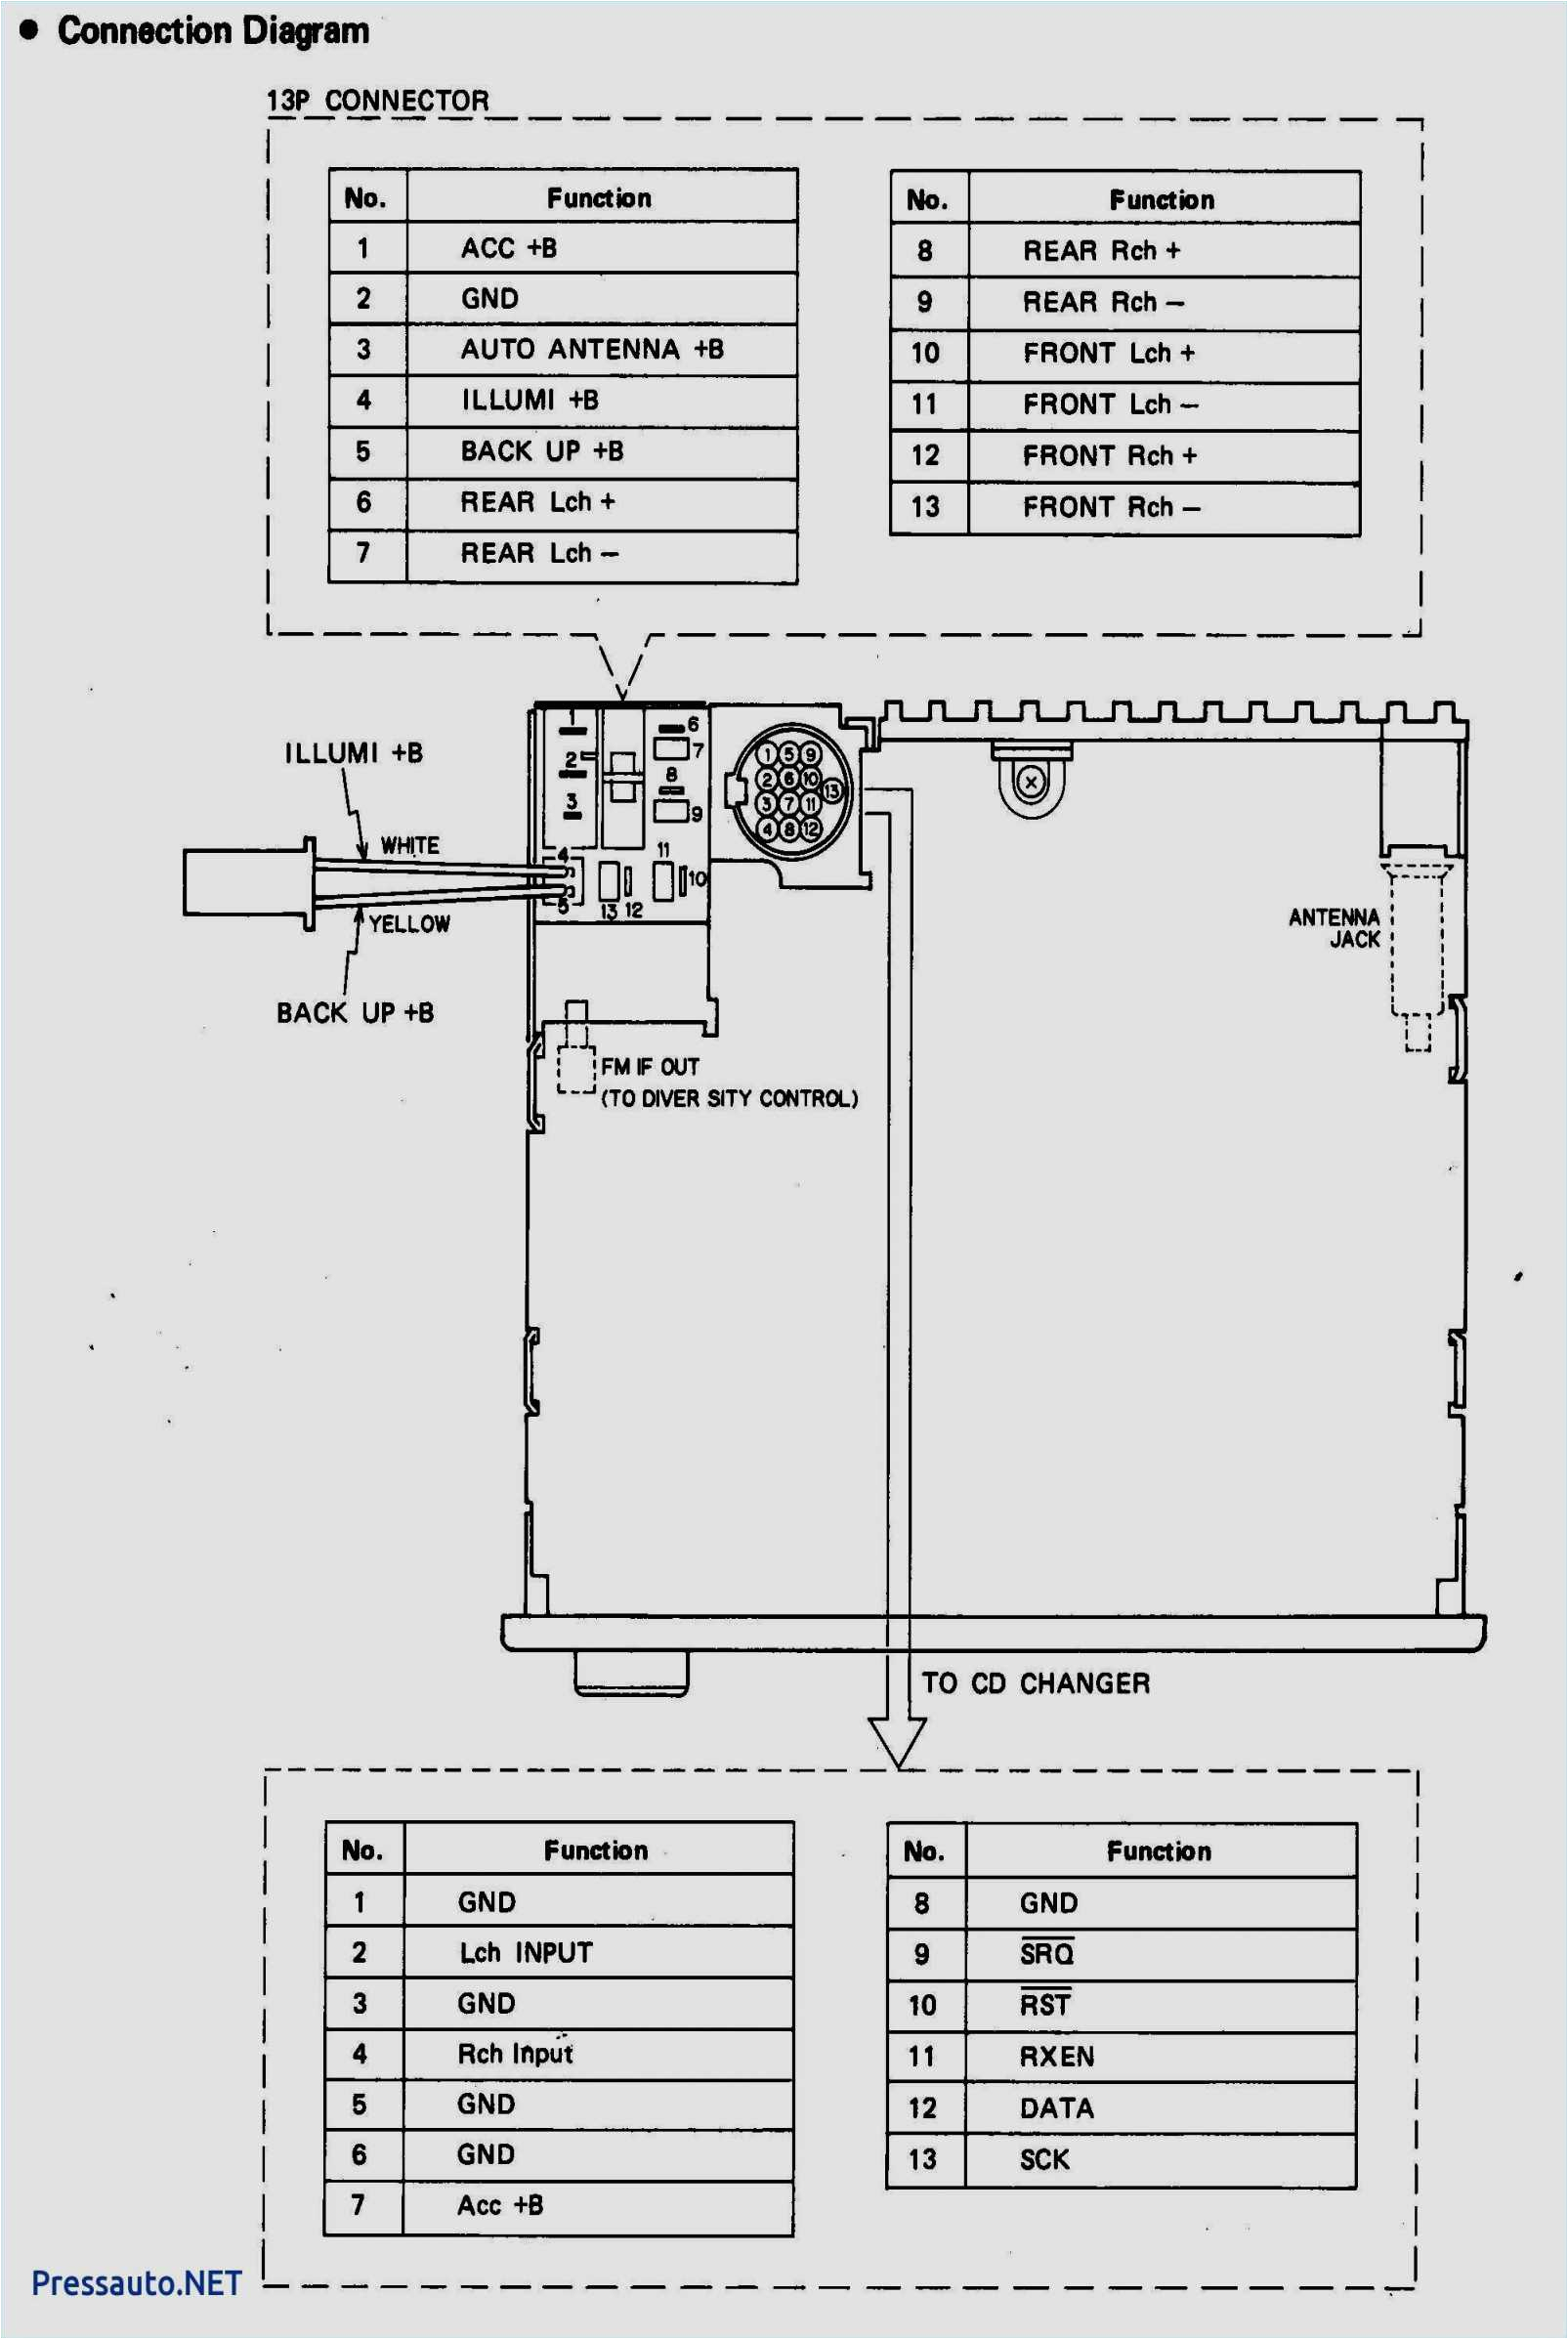 [SCHEMATICS_48IU]  Deh P7000bt Wiring Diagram. pioneer deh p7000bt wiring diagram. pioneer deh  p7000bt wiring diagram autocardesign. pioneer deh p7000bt wiring diagram  wiring diagram and. pioneer deh p680mp wiring diagram autocardesign.  complex yamaha r1 | Deh P7000bt Wiring Diagram |  | A.2002-acura-tl-radio.info. All Rights Reserved.